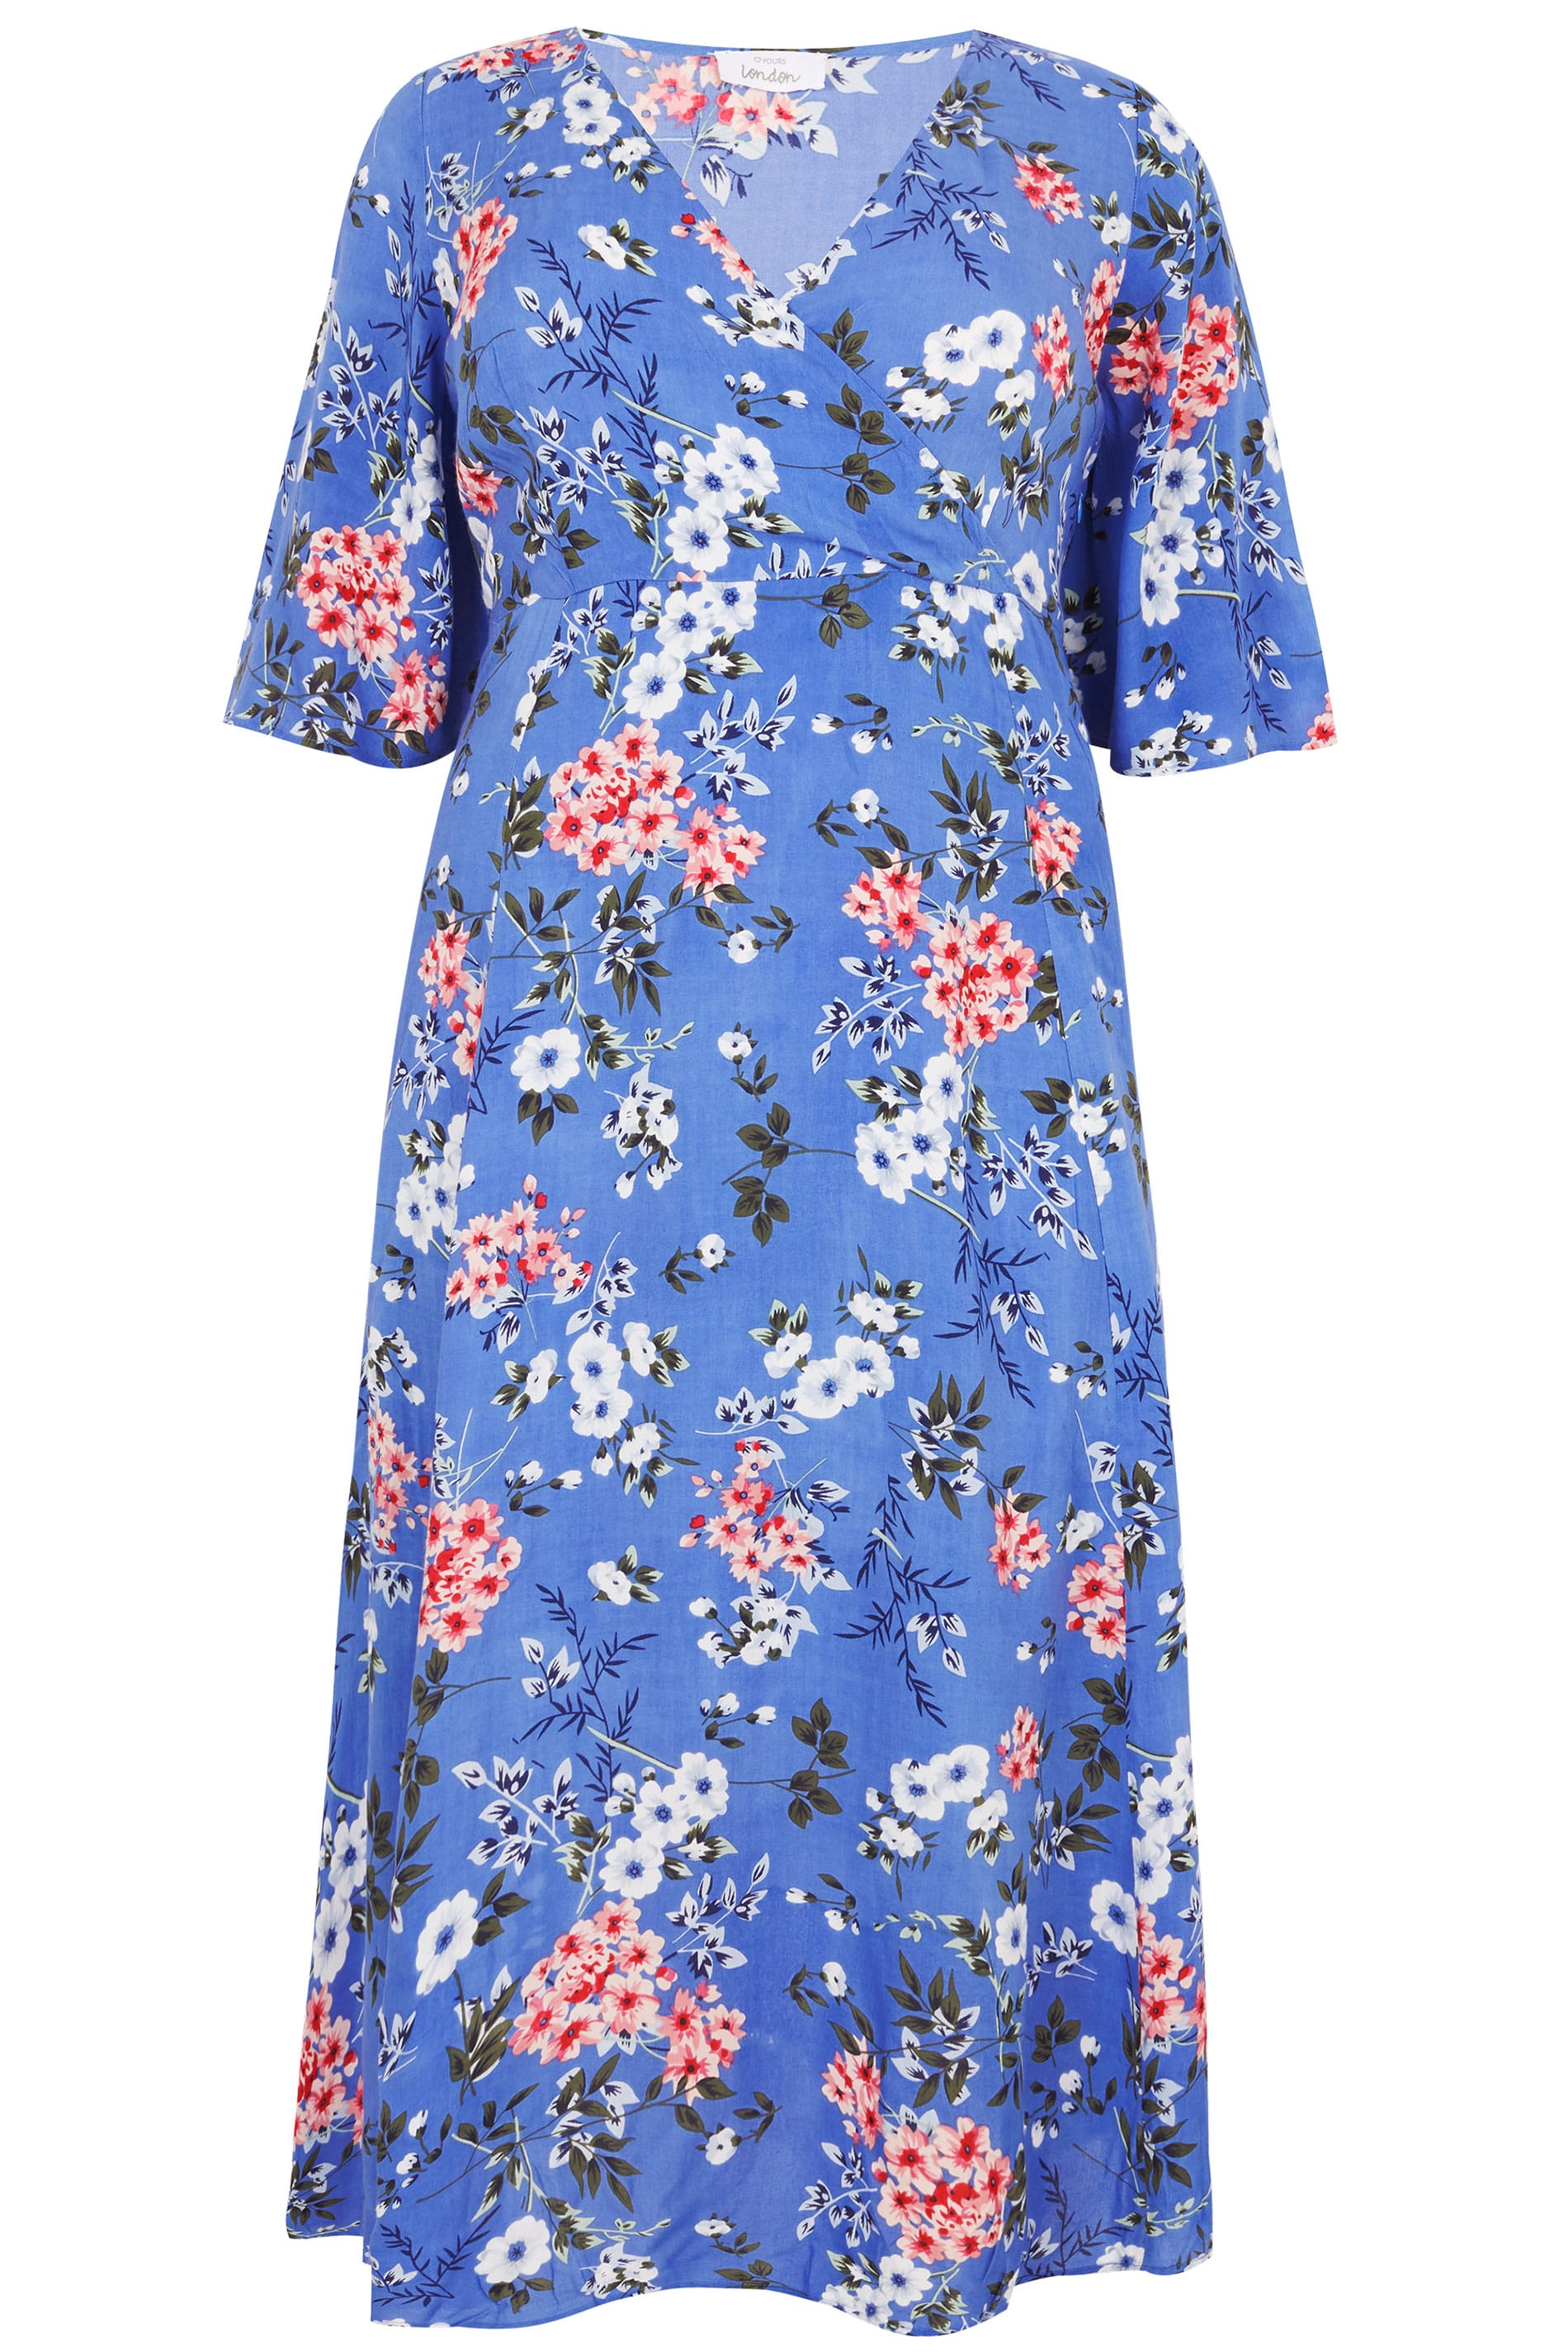 c519d3bef13 YOURS LONDON Blue Floral Wrap Maxi Dress